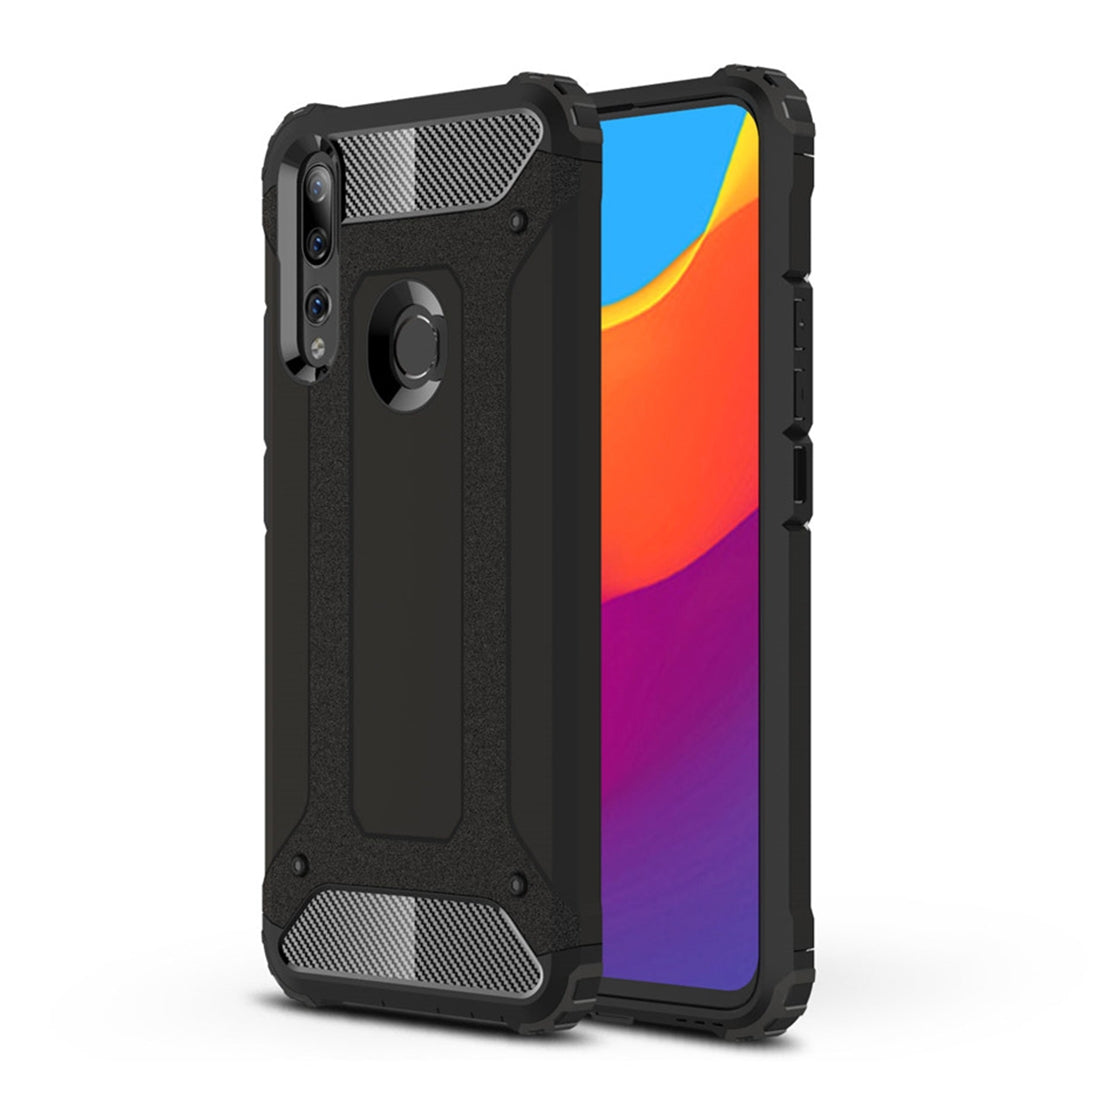 Magic Armor TPU + PC Combination Case for Huawei Y9 Prime(2019) / P Smart Z (Black)